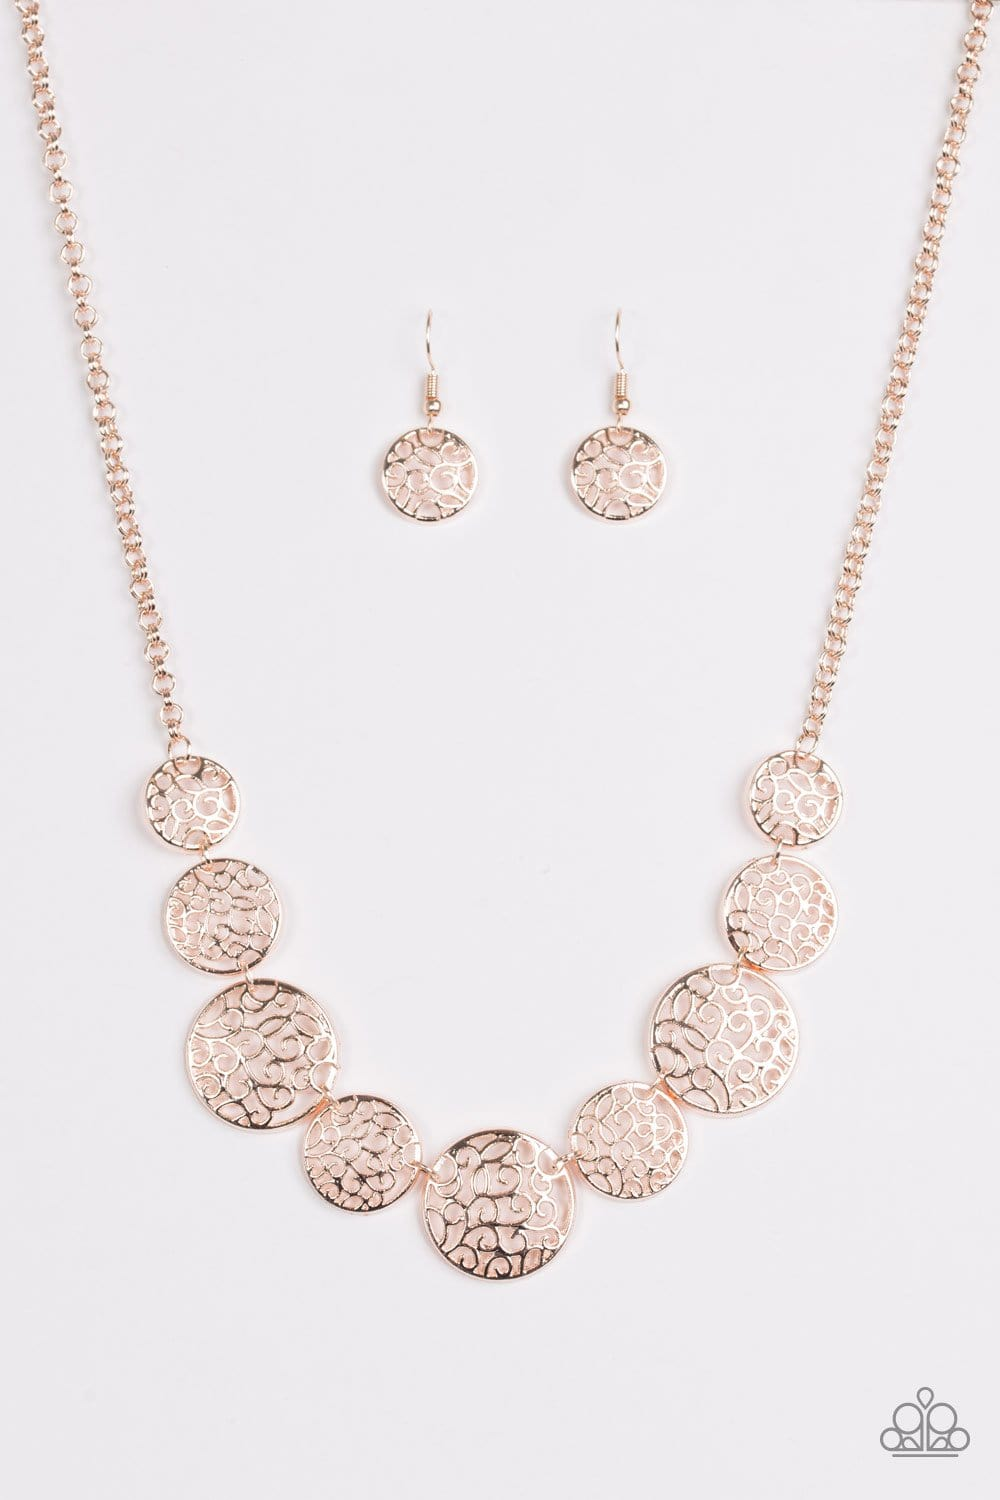 All The Time In The WHIRL - Rose Gold - Jewels N' Thingz Boutique